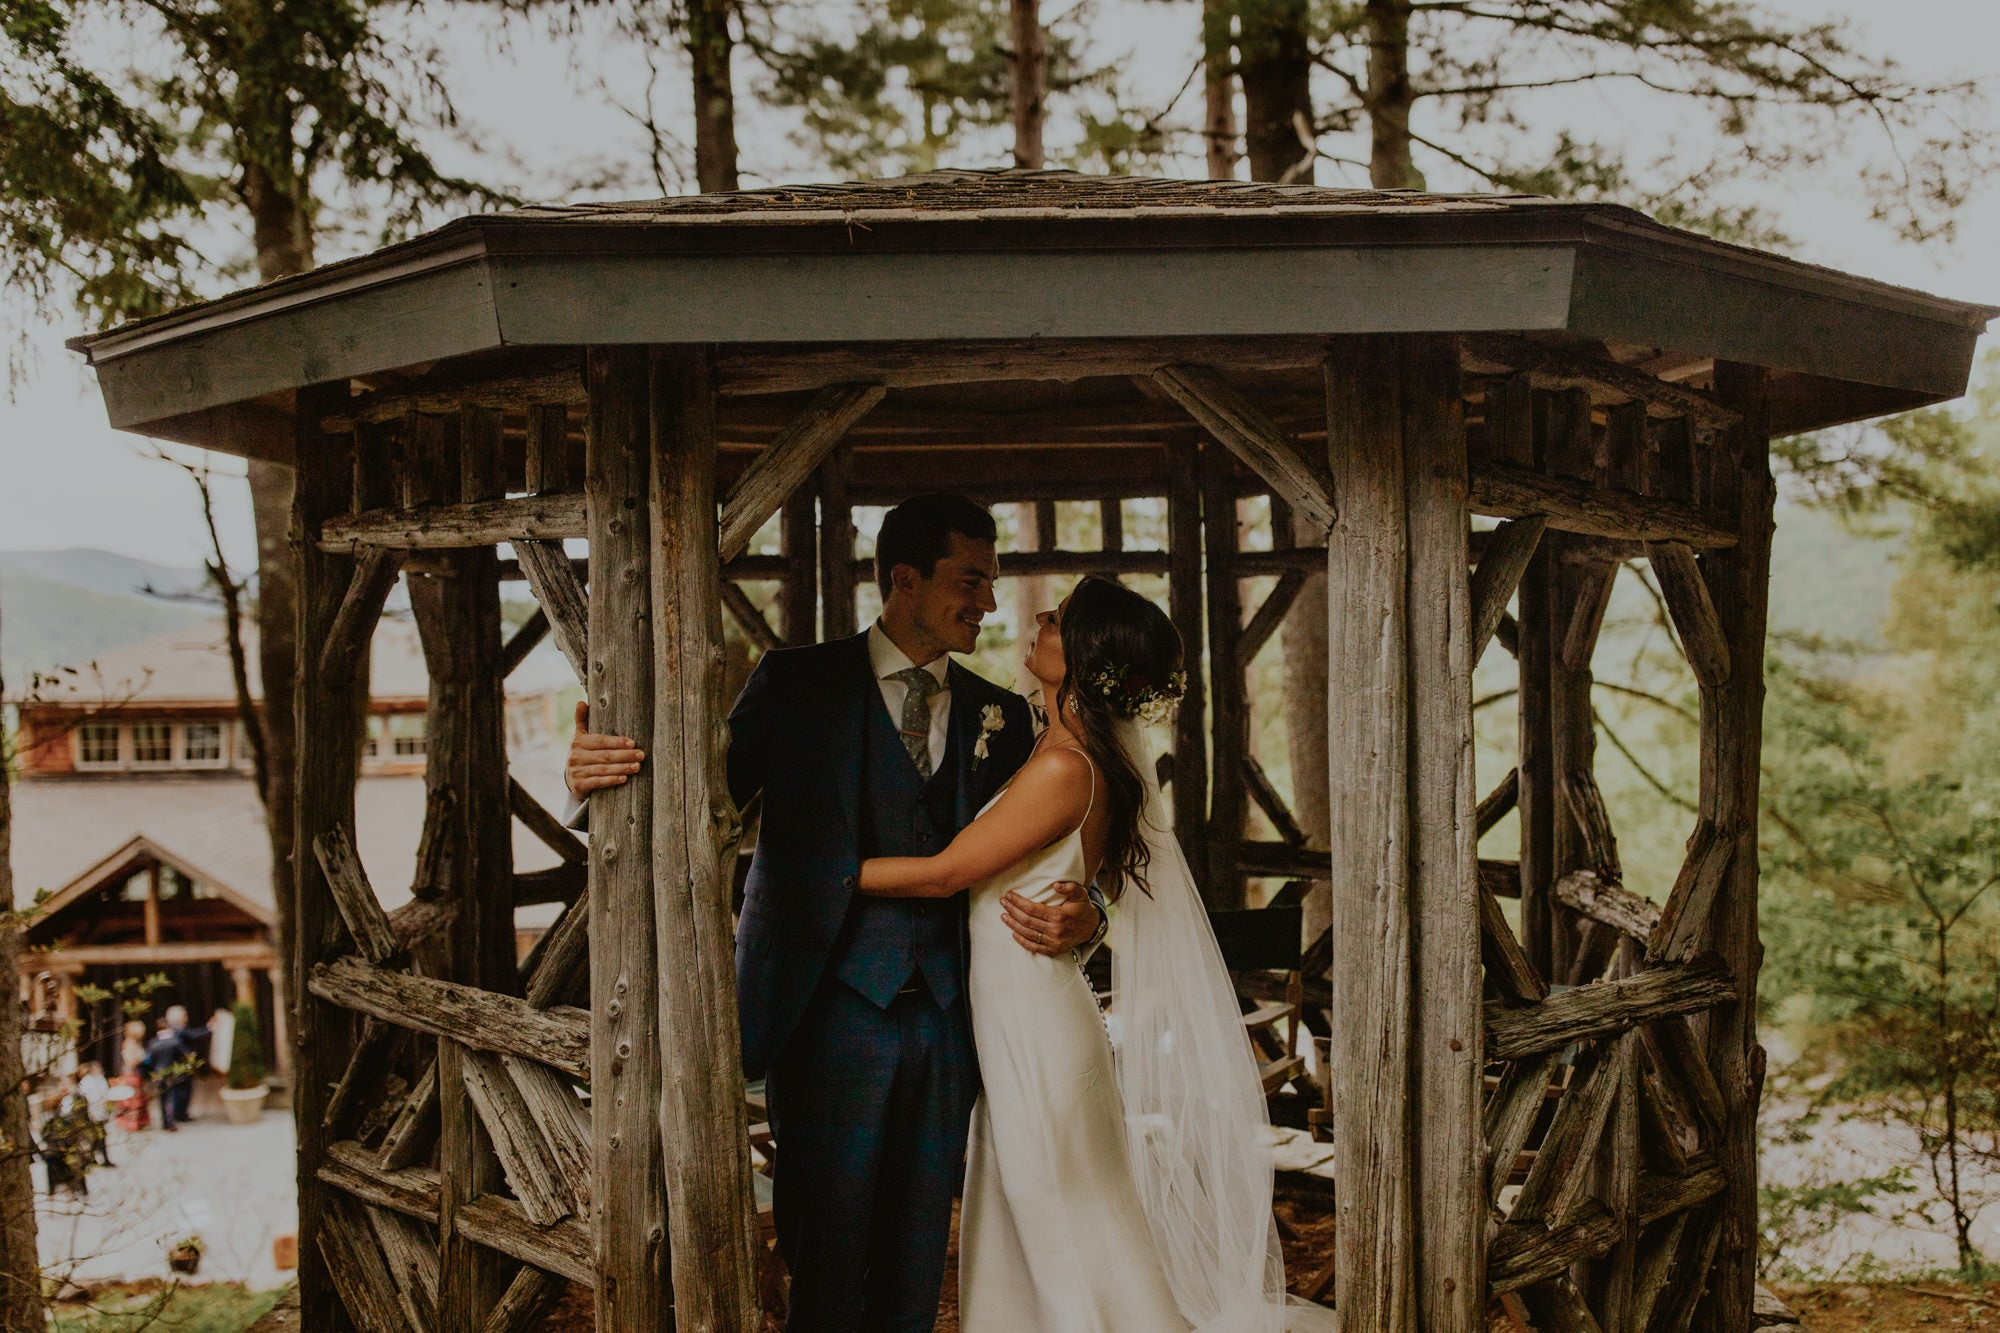 Wedding photo in the pagoda